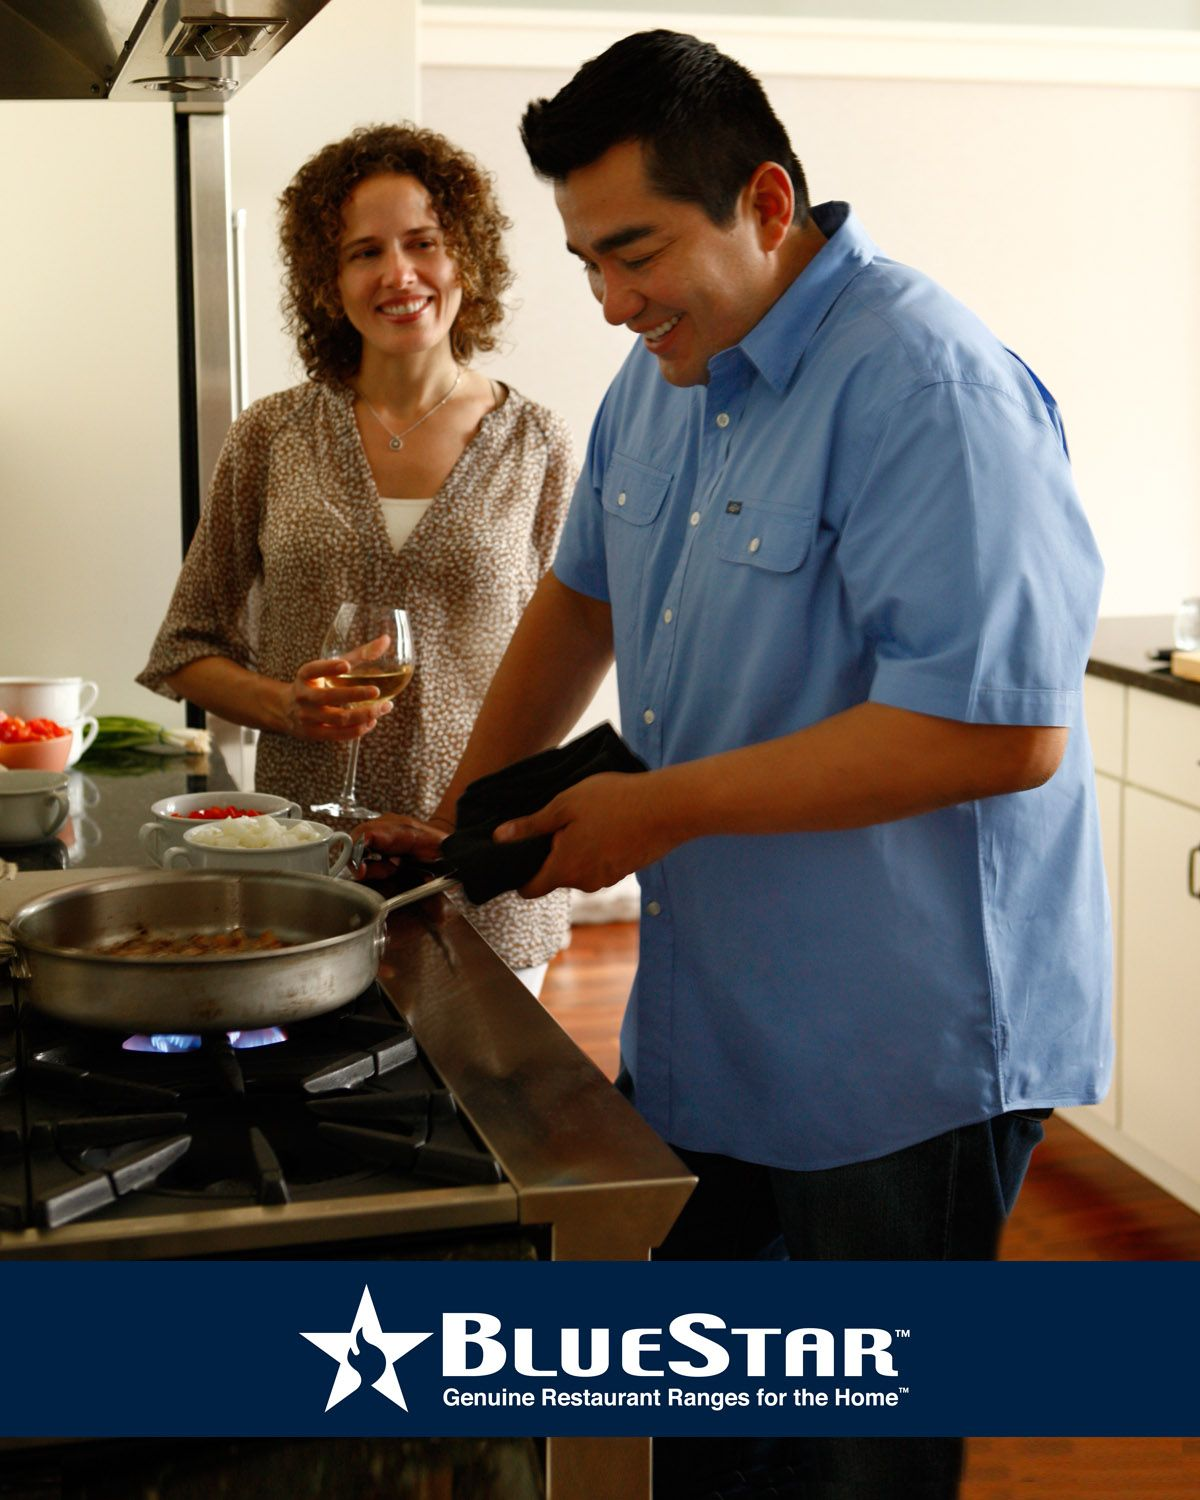 Chef Jose Garces cooking on his new BlueStar range.